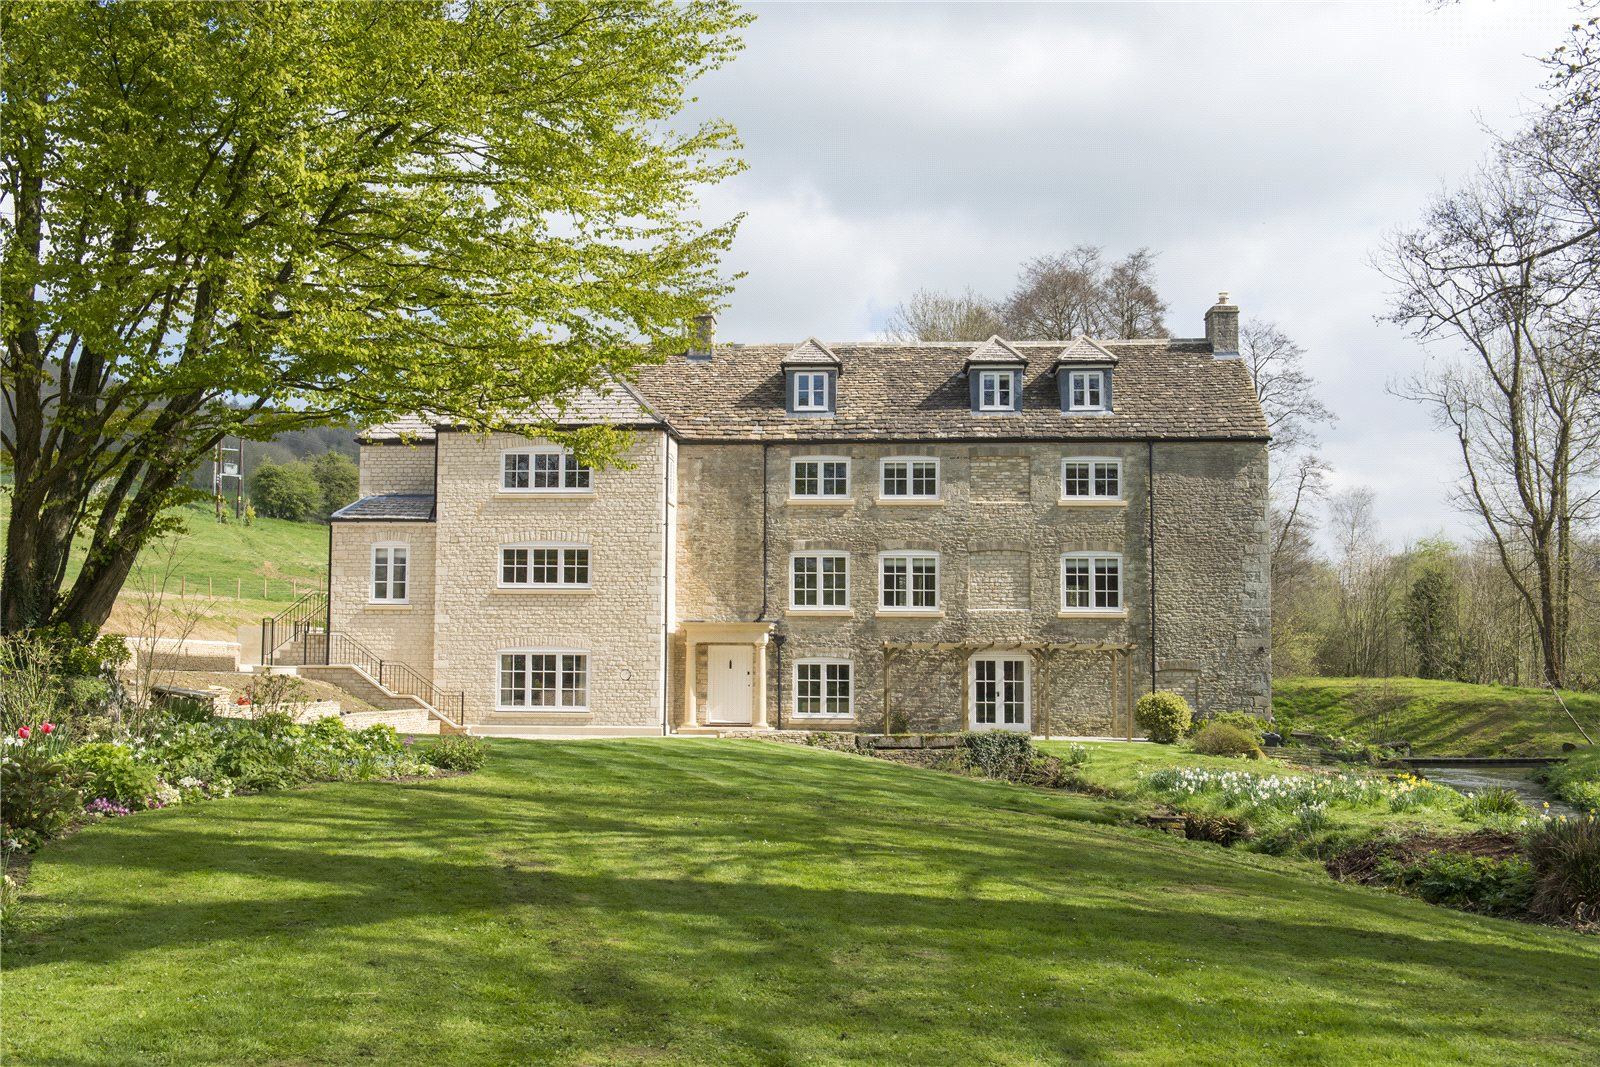 Single Family Home for Sale at Wortley, Wotton-under-Edge, Gloucestershire, GL12 Gloucestershire, England